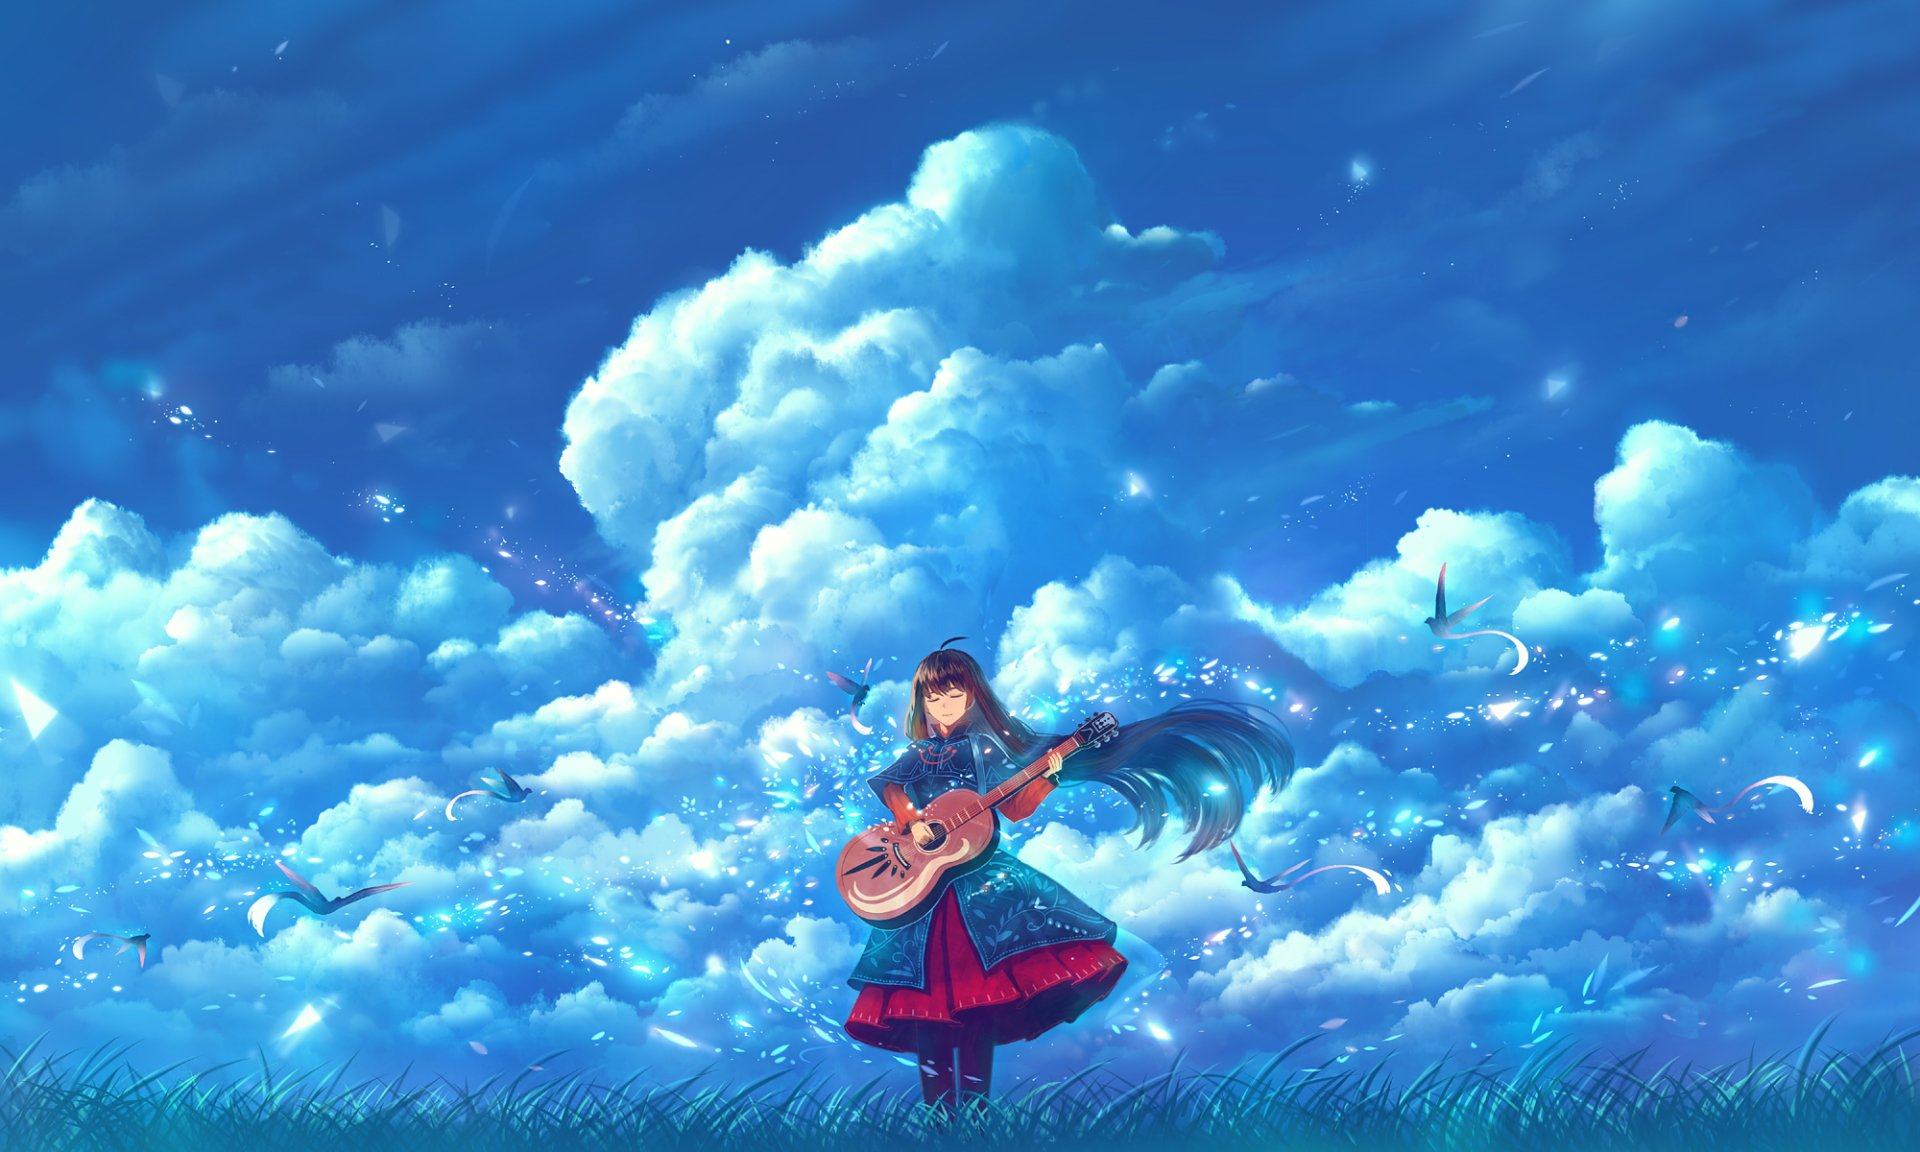 Wallpapers ID:1065650